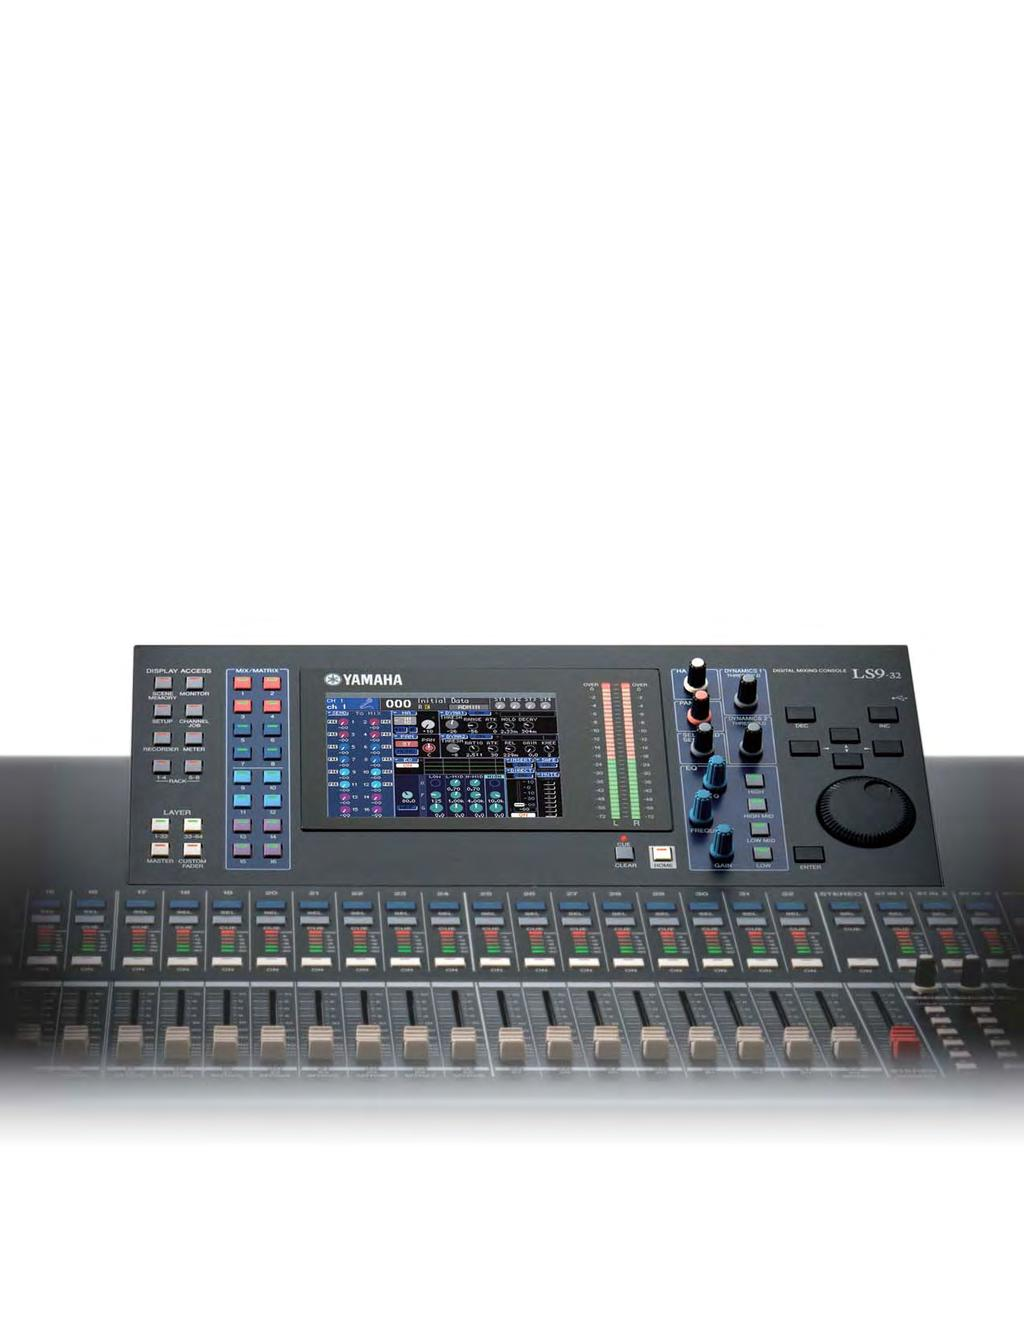 For Details Please Contact Lpa535 This Document Is Printed On Yamaha Wiring Diagram Bose 901 To Powered Mixer